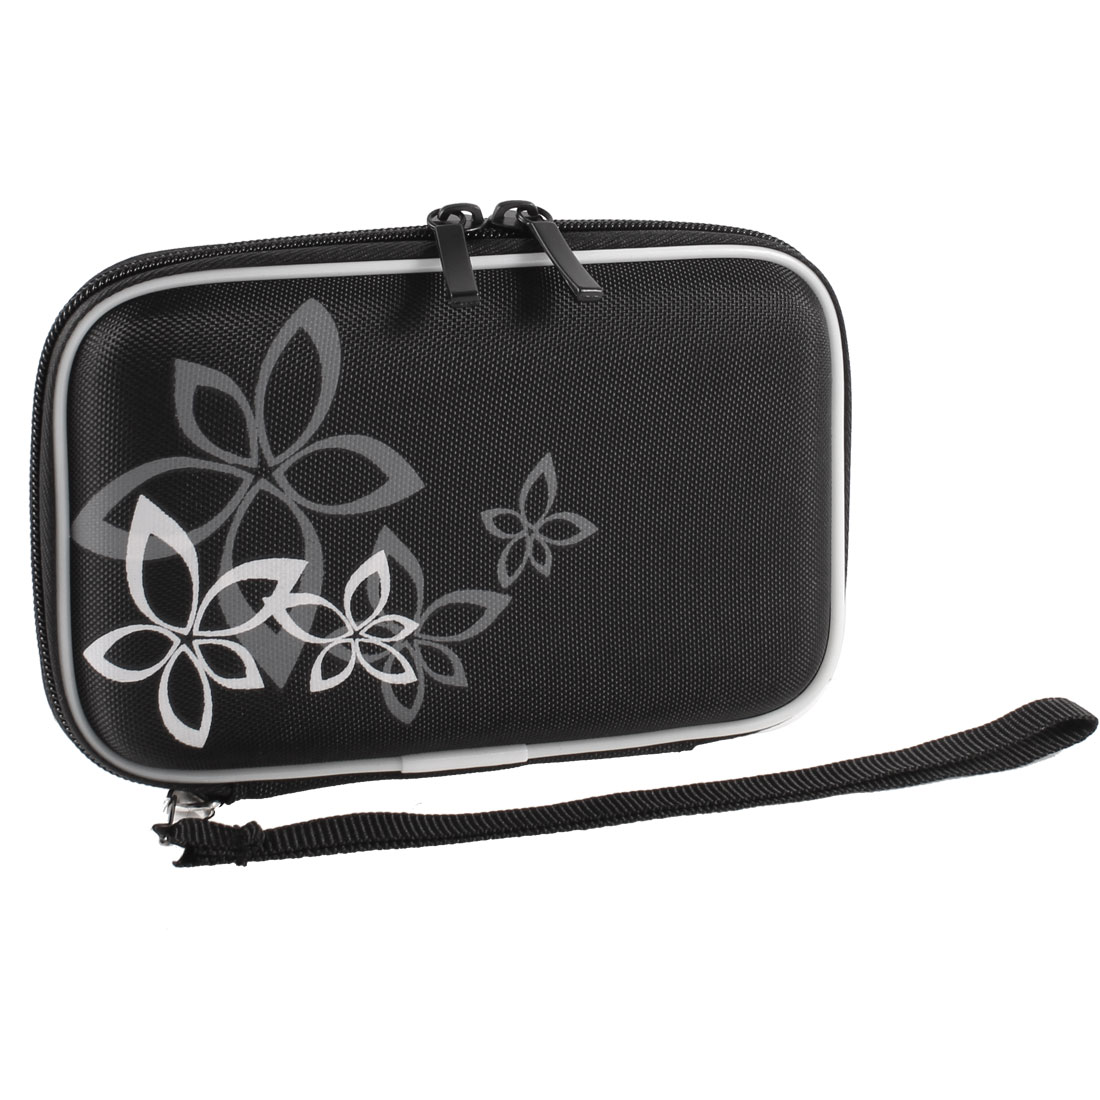 "Black EVA Protect Case Bag Pouch Zipper Closure for 2.5"" HDD Hard Drive Disk"